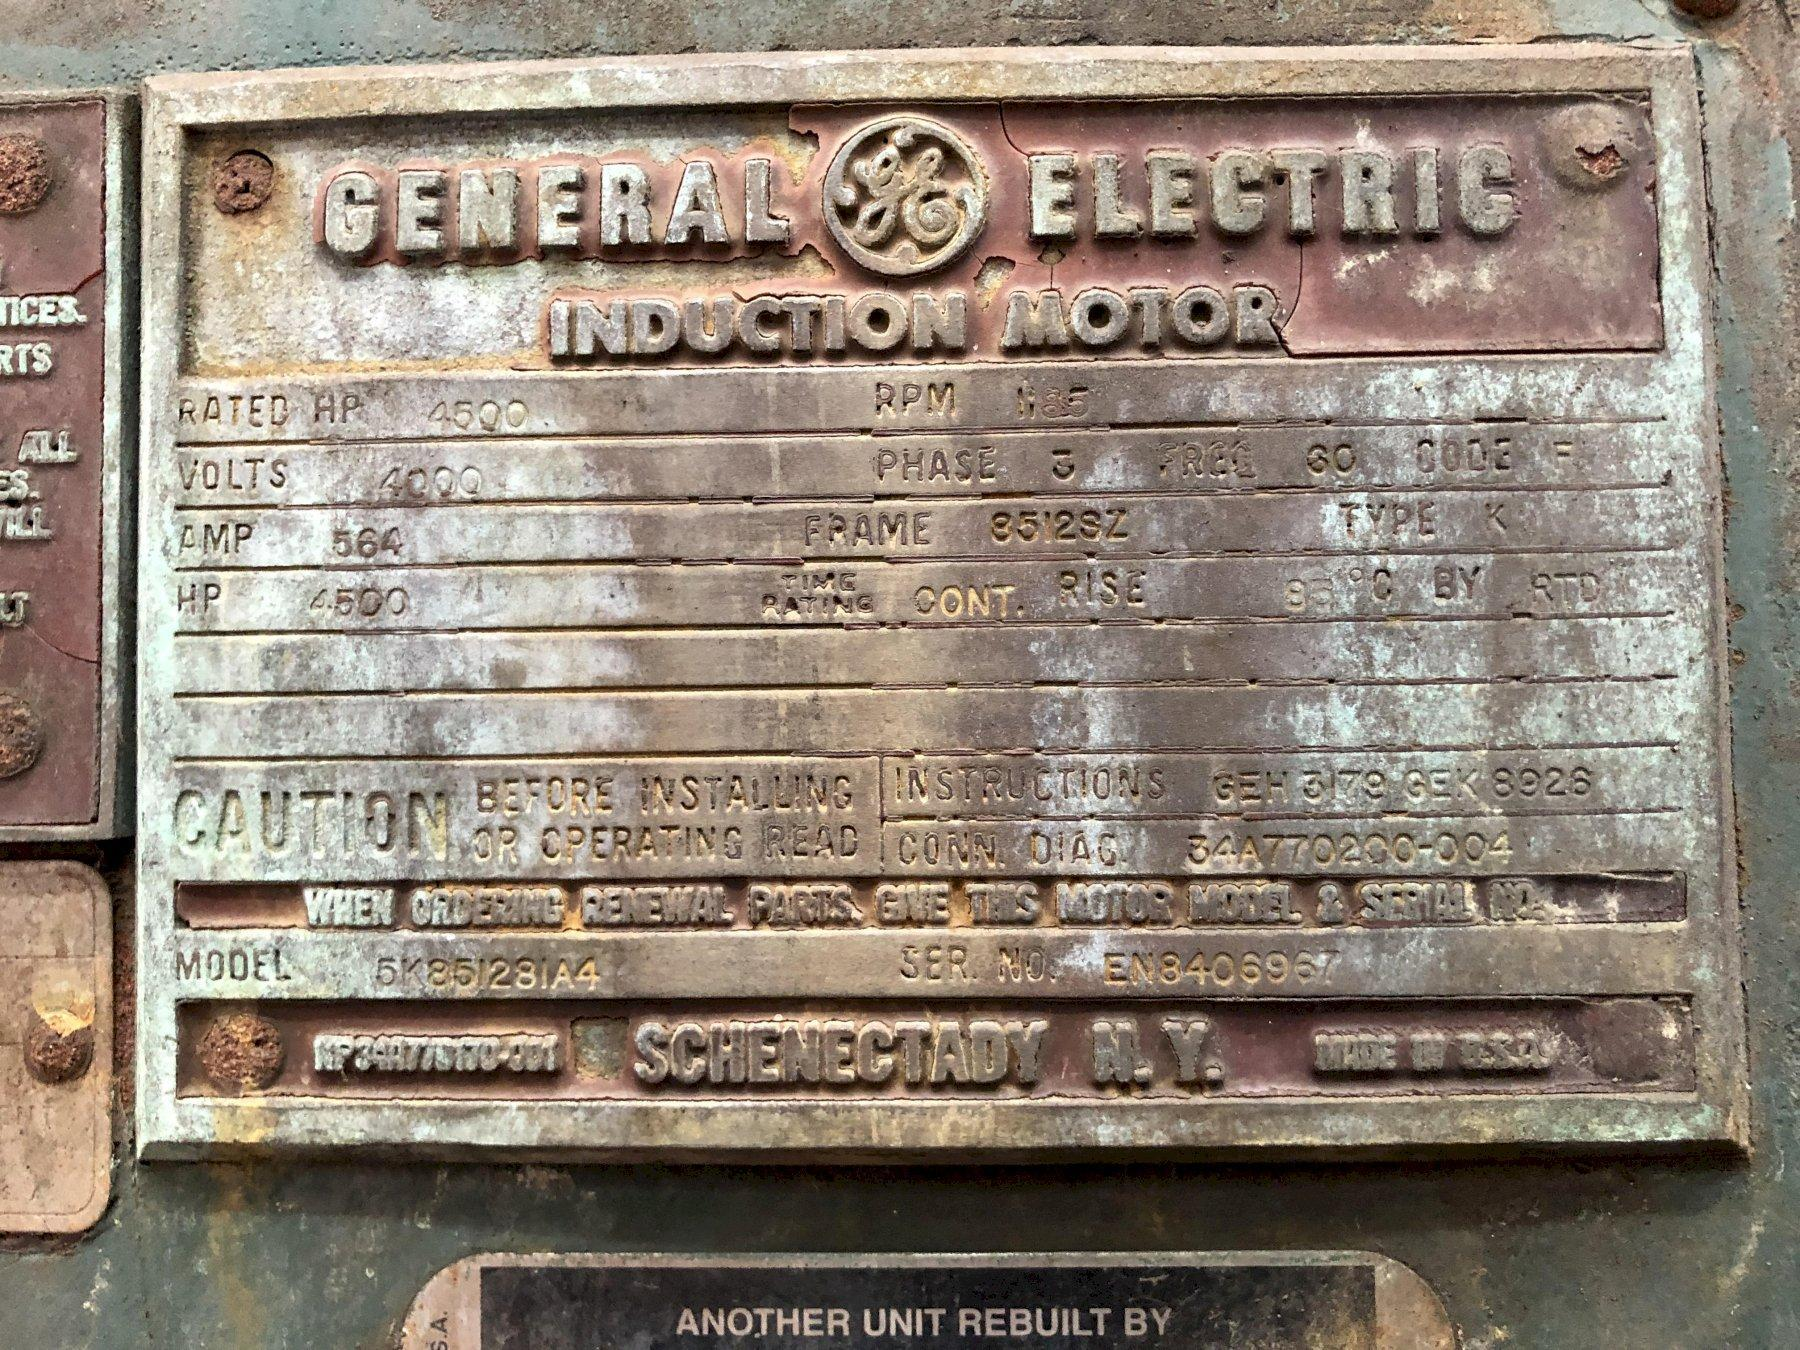 American size 427 type vs class 5 blower s/n 78-427-5h-33 rated at 1200 rpm with GE model 5k851281a4 4500 hp motor s/n en8406967 1185 rpm, 4000 volt